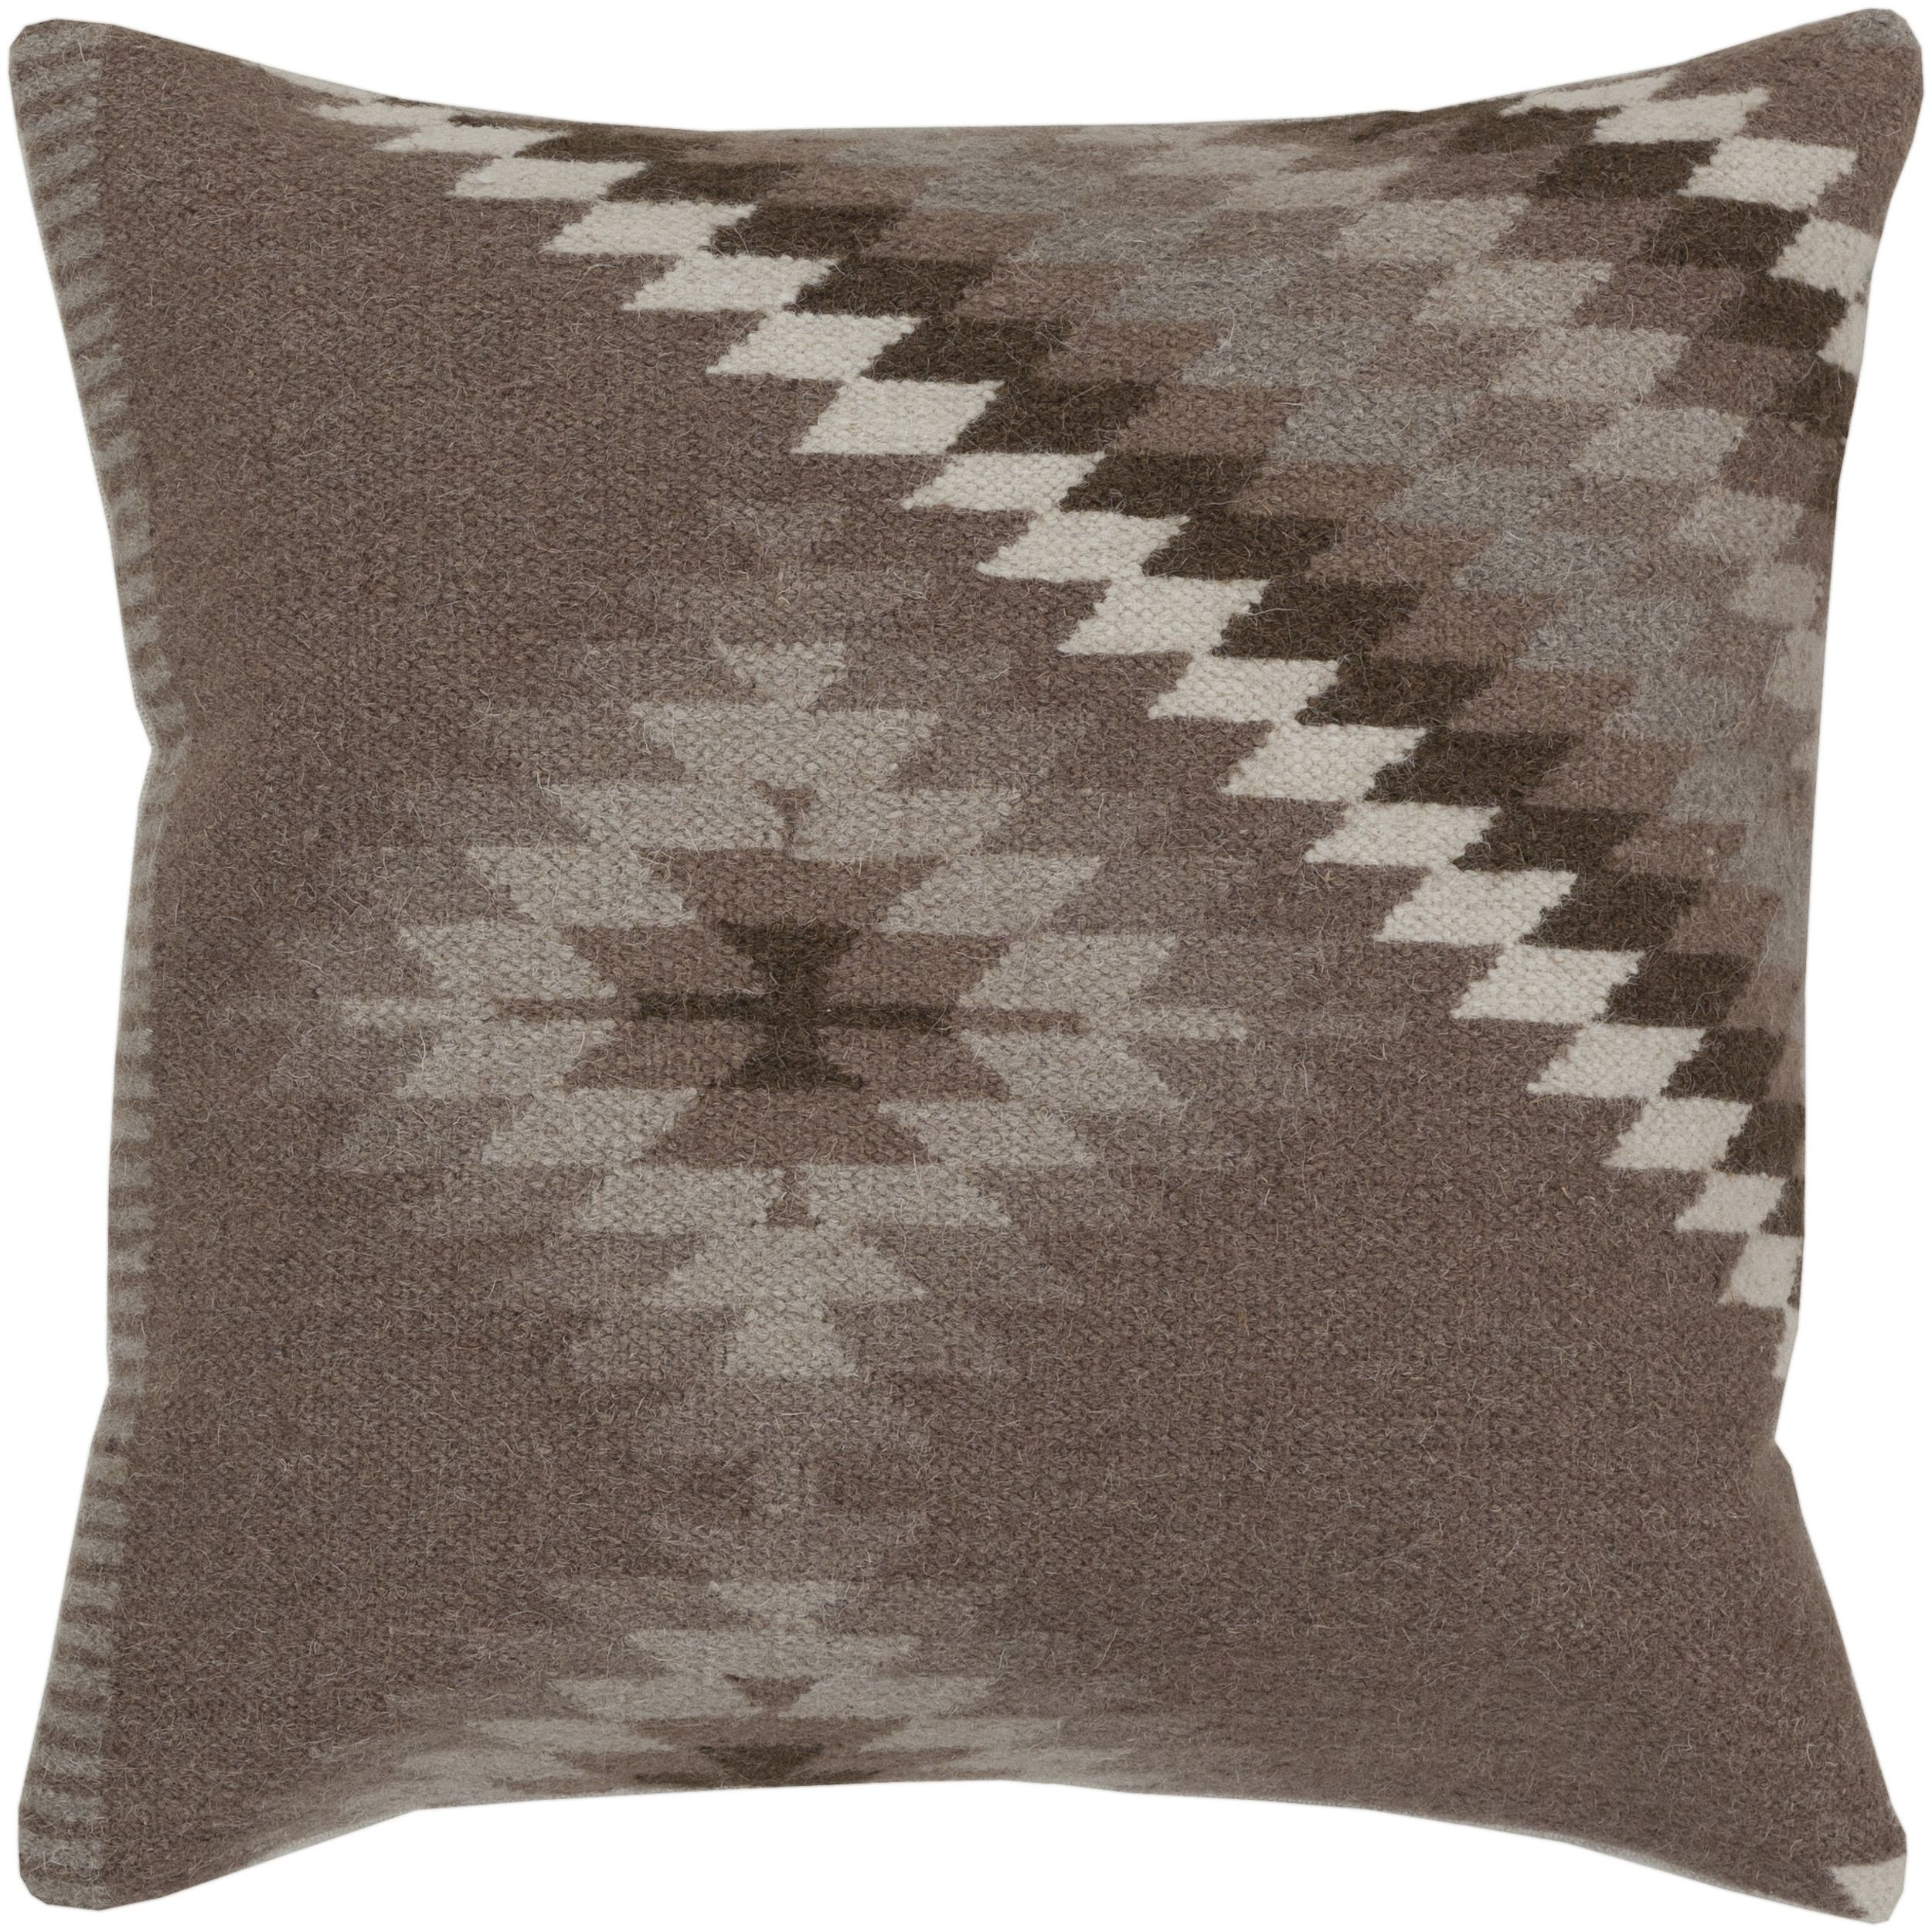 Throw pillows place throw pillows on a bare sofa to spruce up the